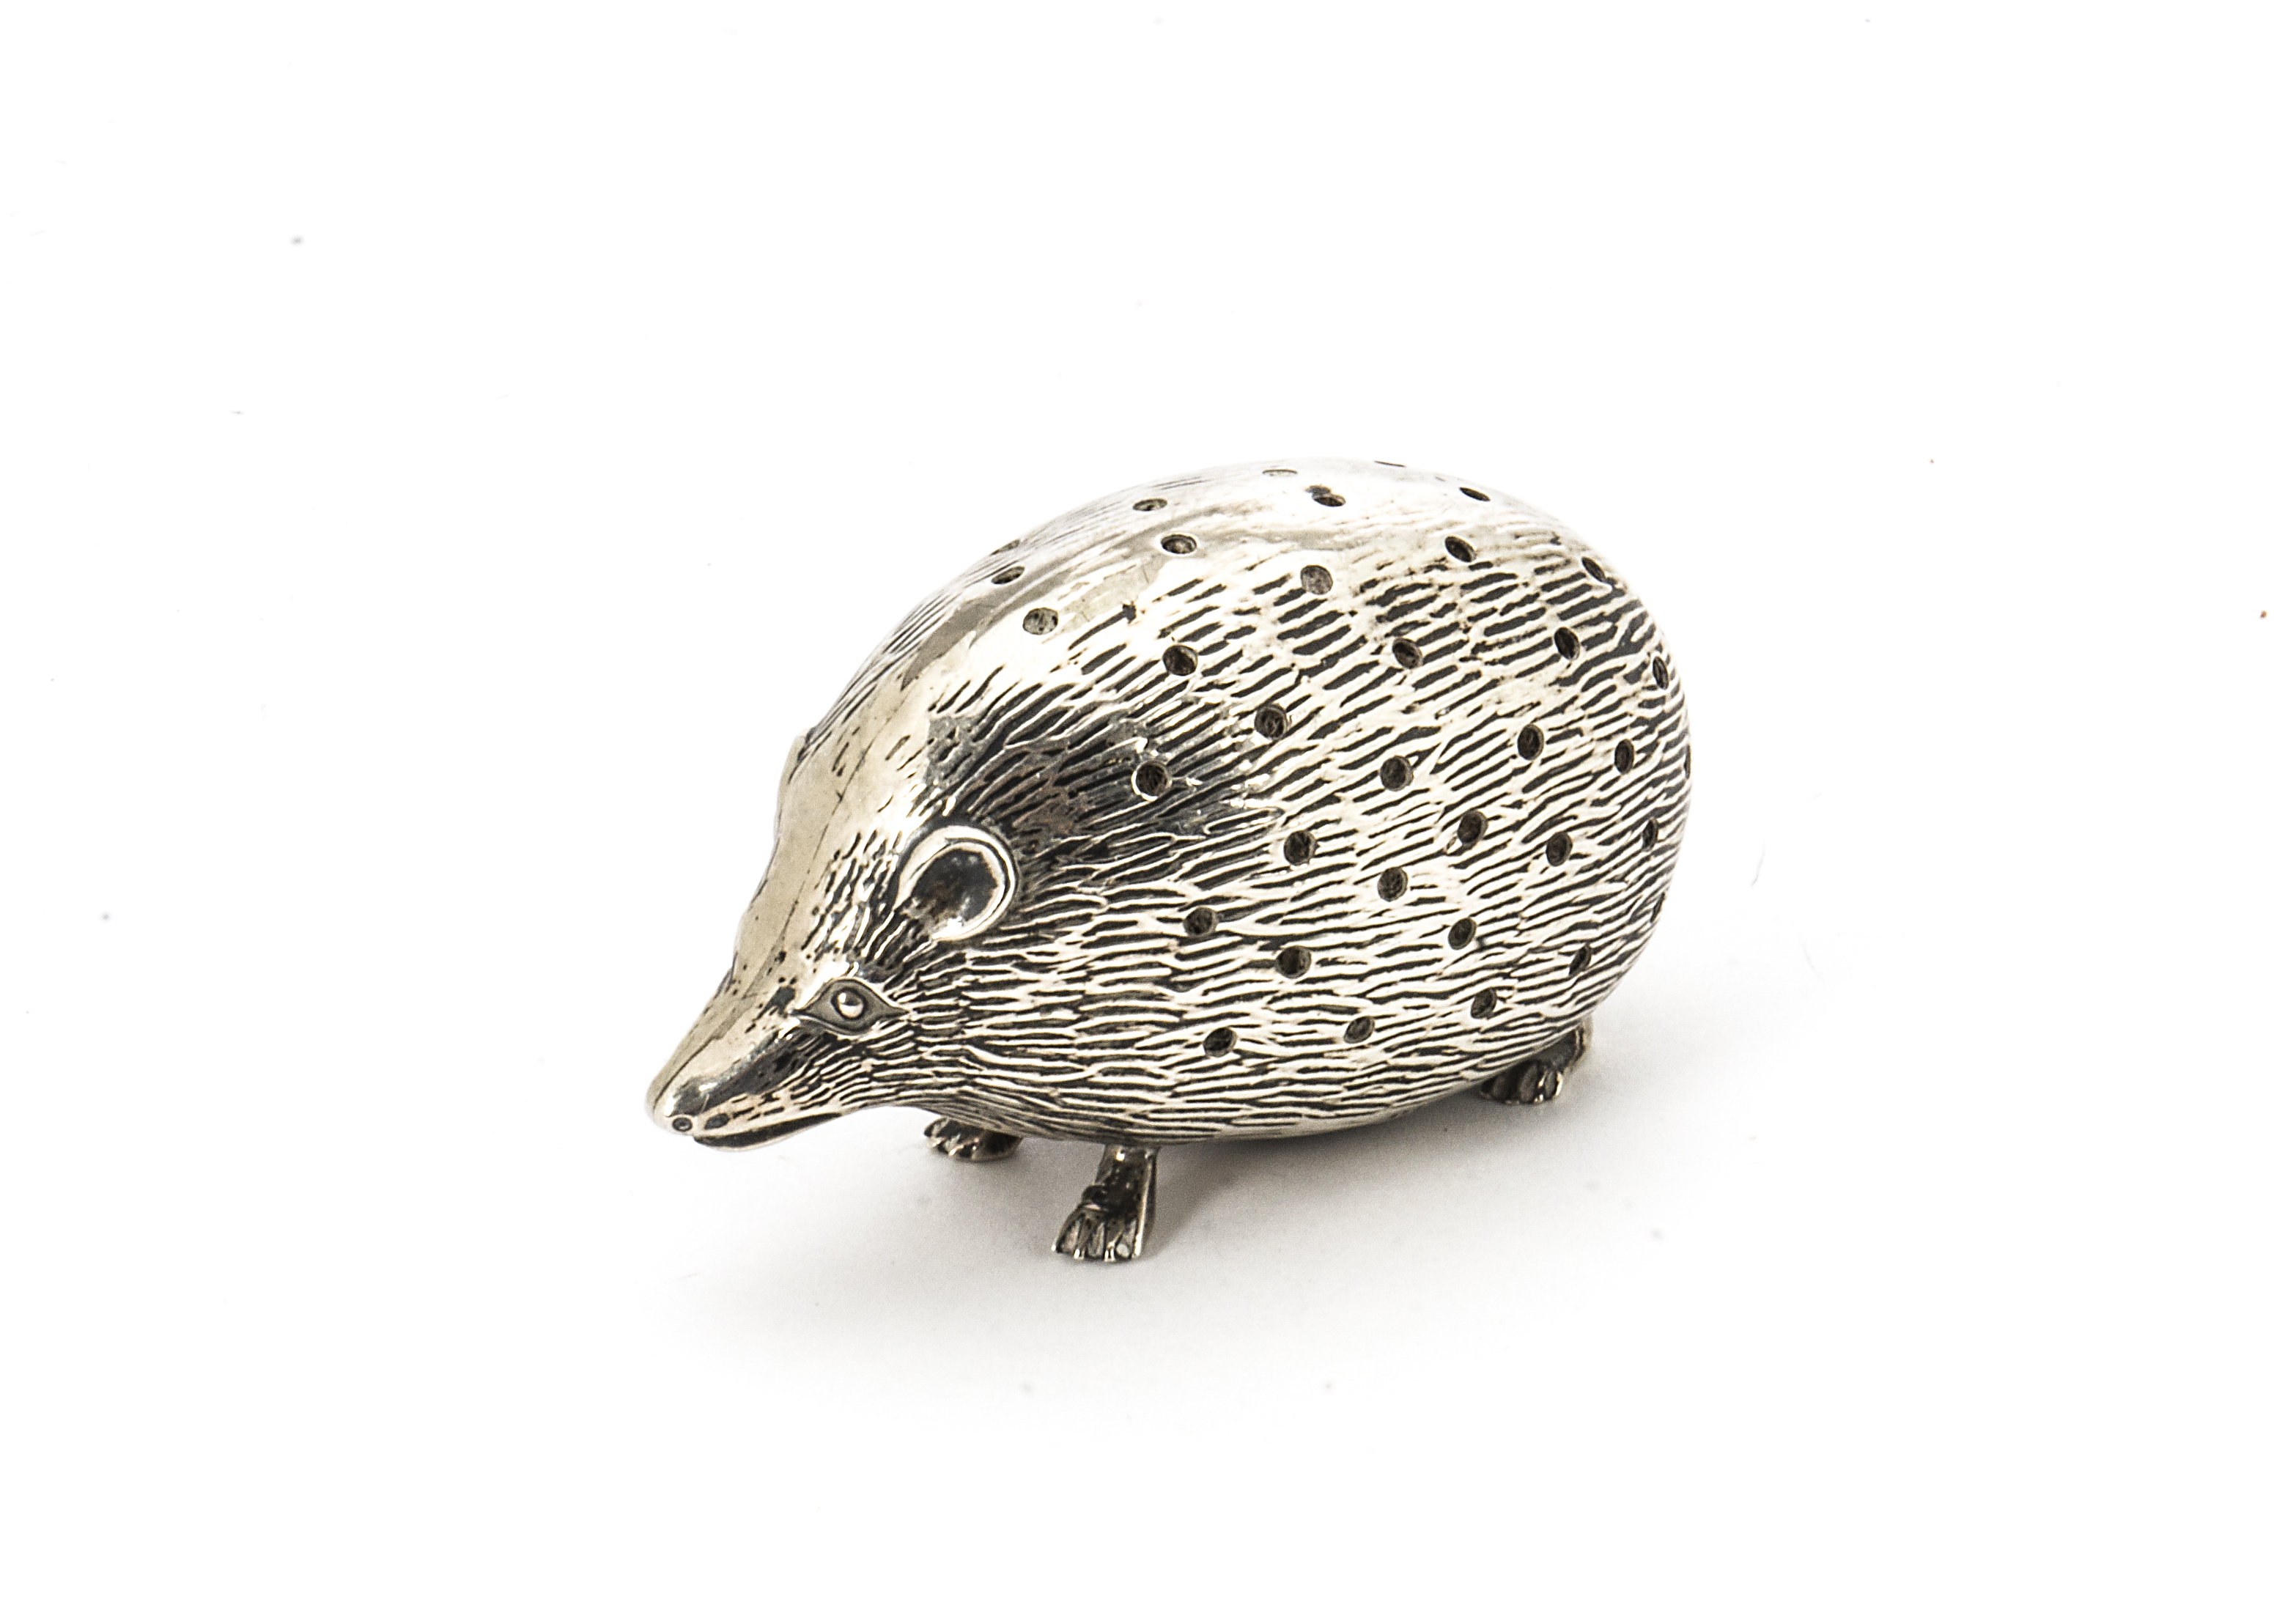 Lot 39 - An Edwardian silver novelty pin cushion by L&S, modelled as a hedgehog, Birmingham 1907